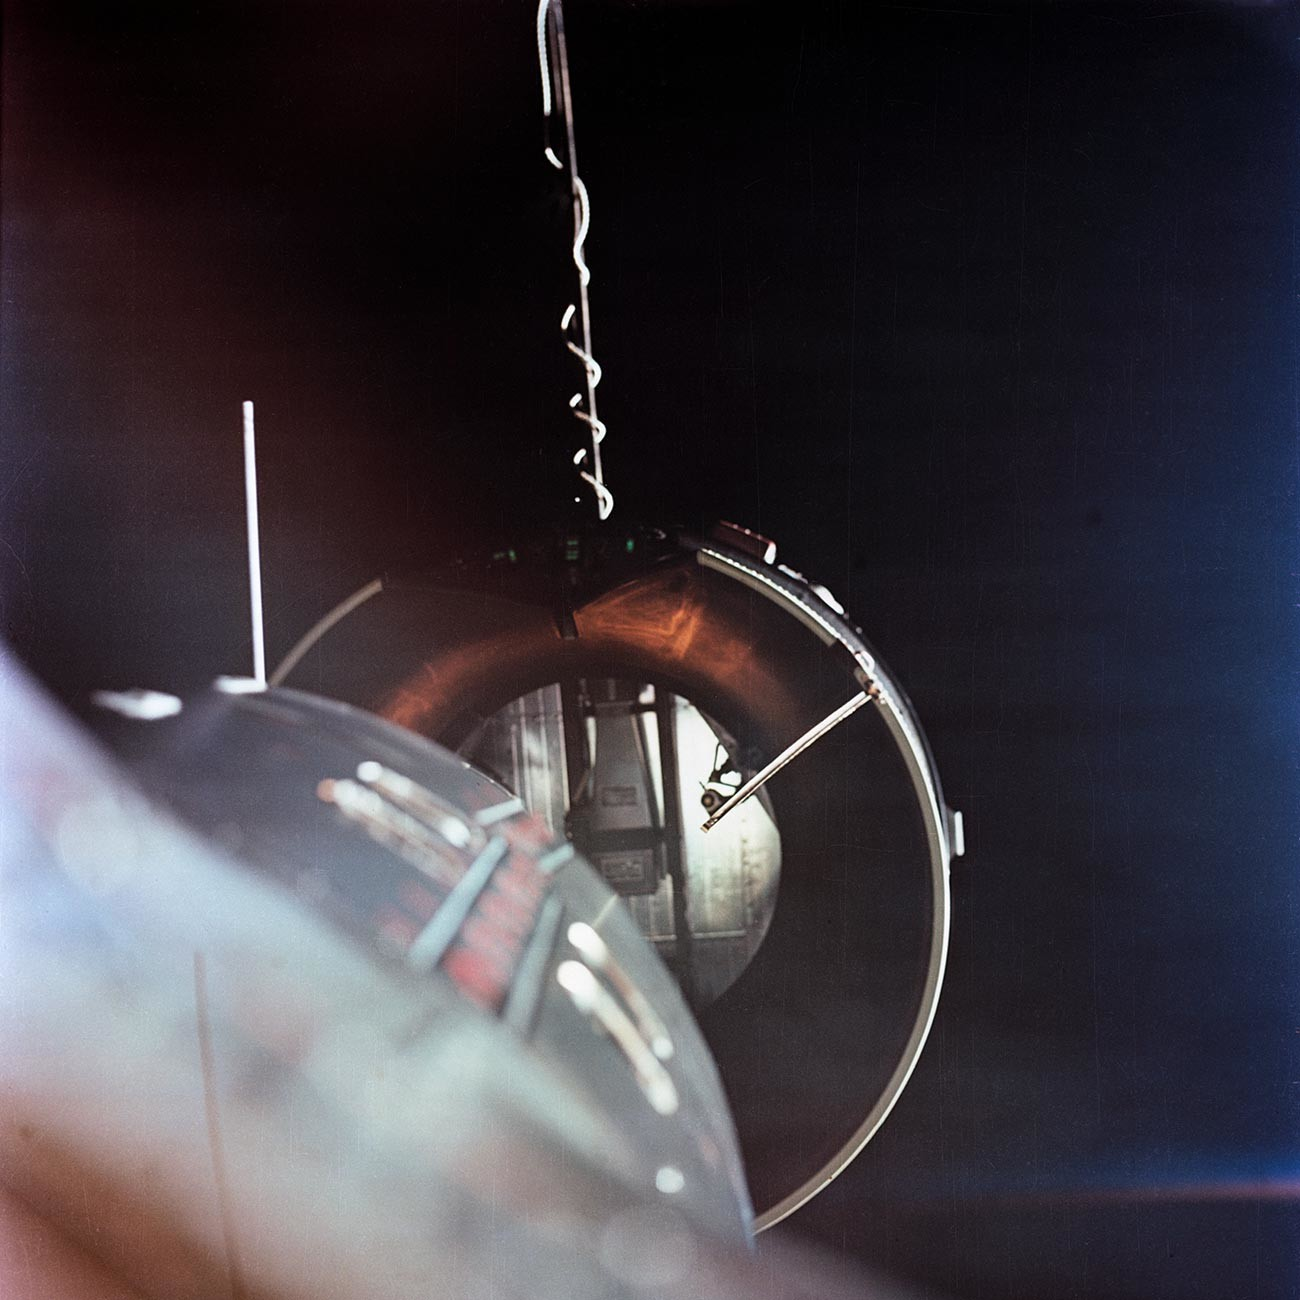 The Agena Target Docking Vehicle seen from the National Aeronautics and Space Administration's Gemini adapter of the Agena is approximately two feet from the nose of the spacecraft (lower left).